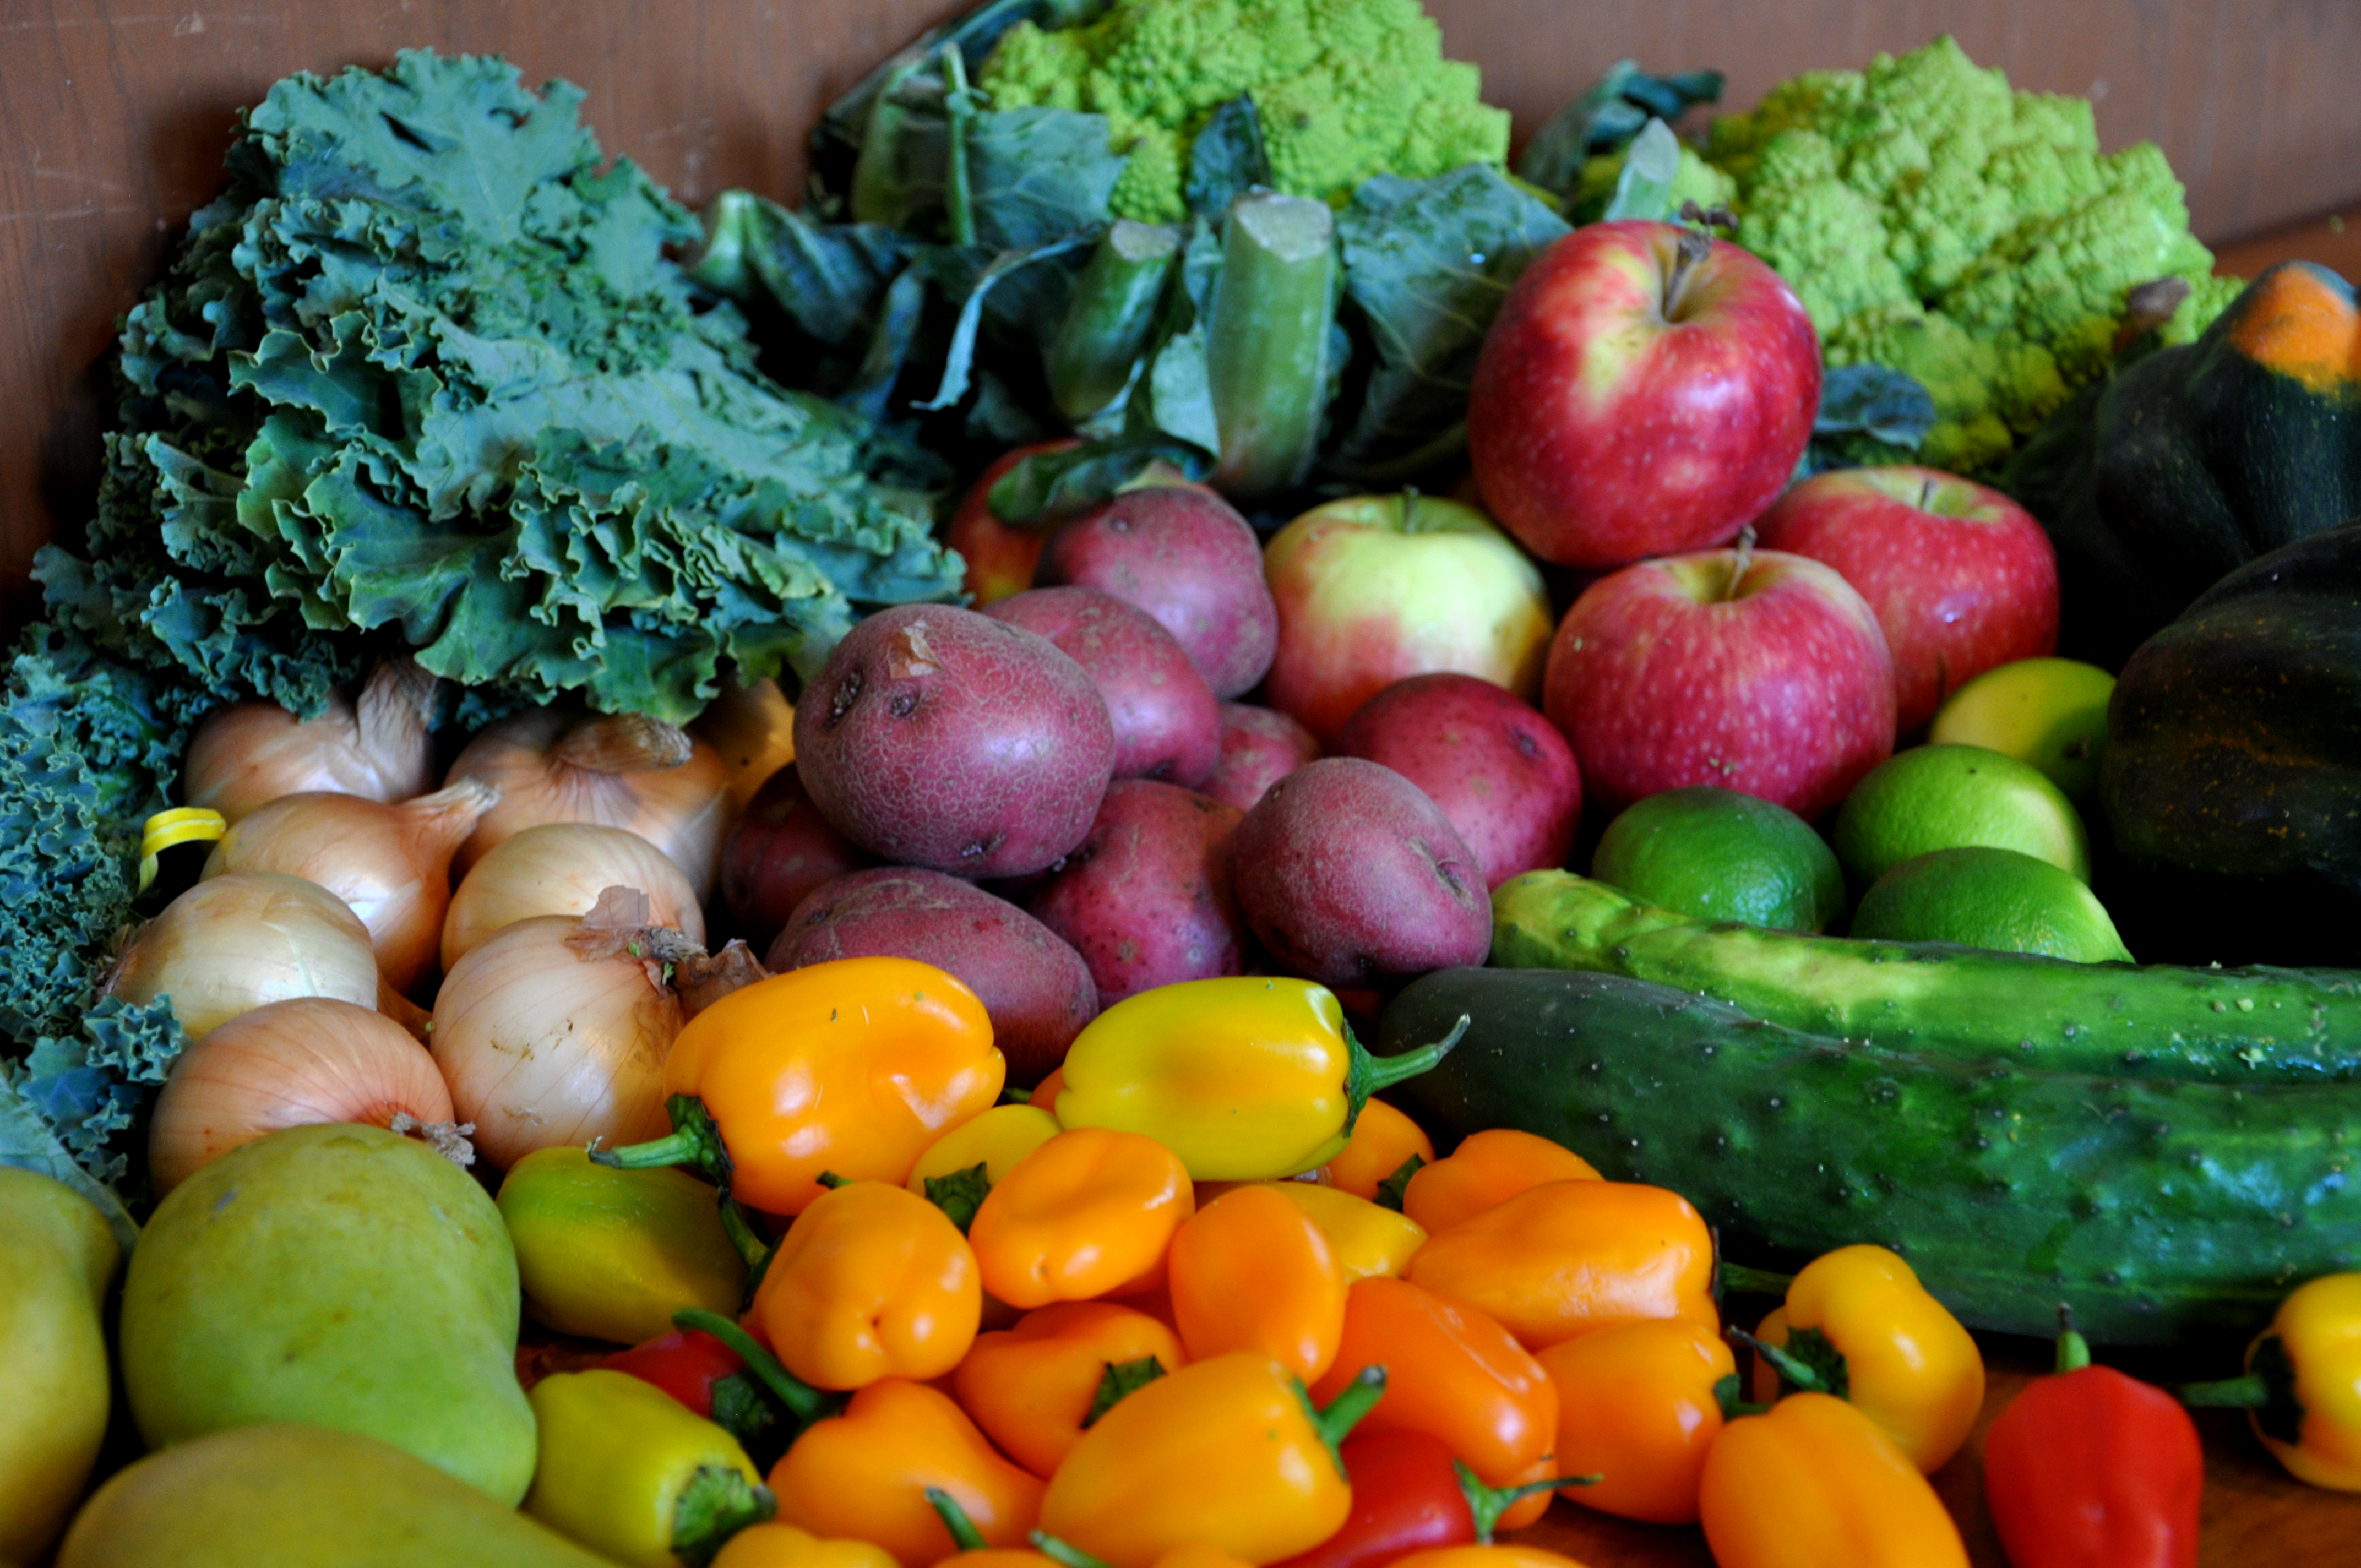 array of organic fruits and vegetables on a table